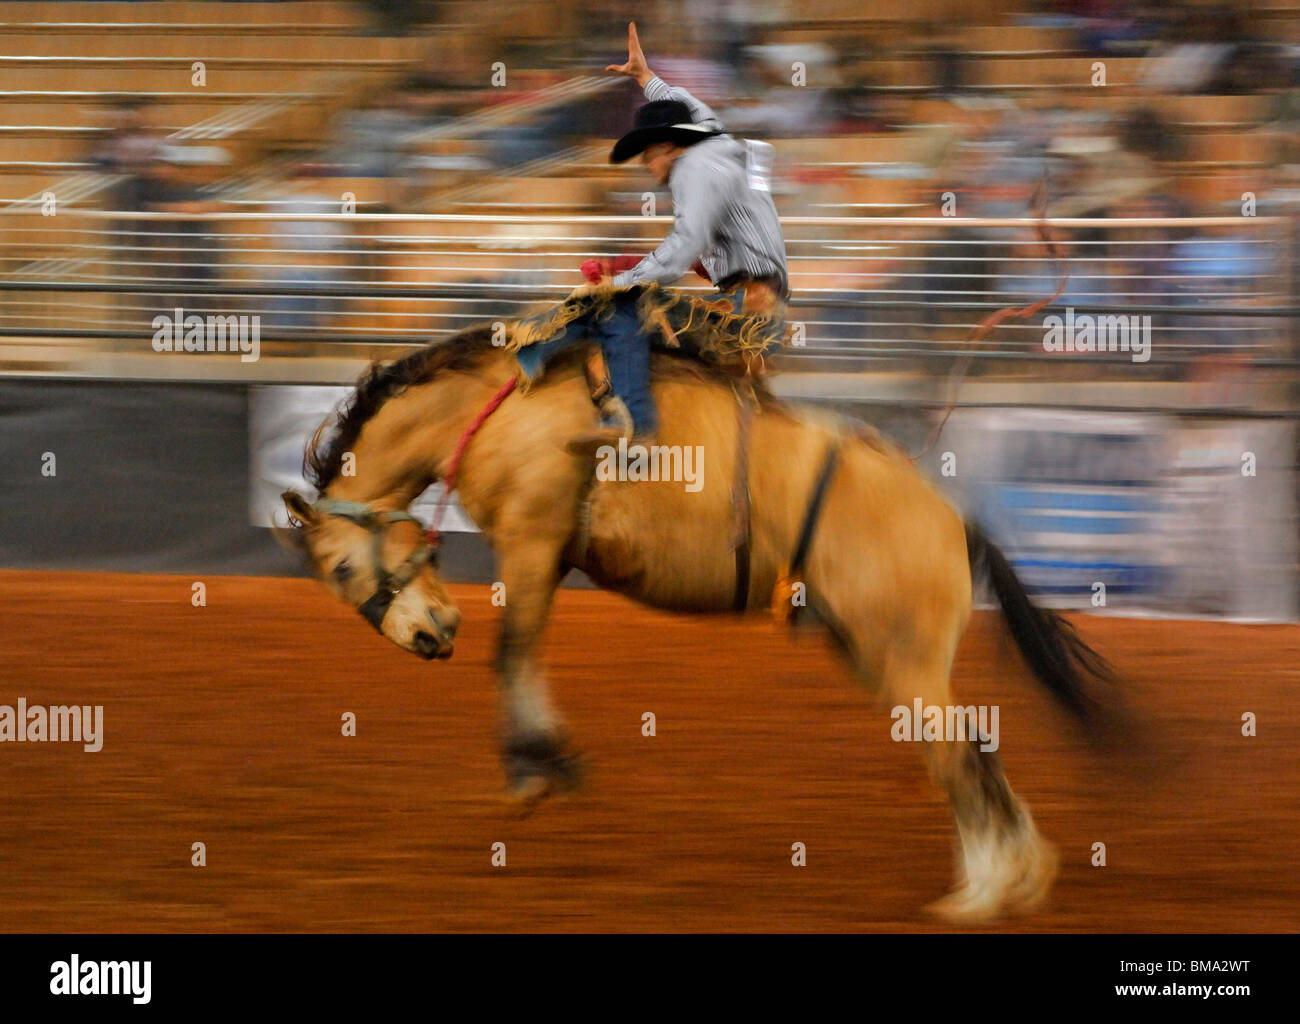 North America, USA, Florida, Kissimmee, Cowboy riding a wild horse at a rodeo as audience watches. - Stock Image